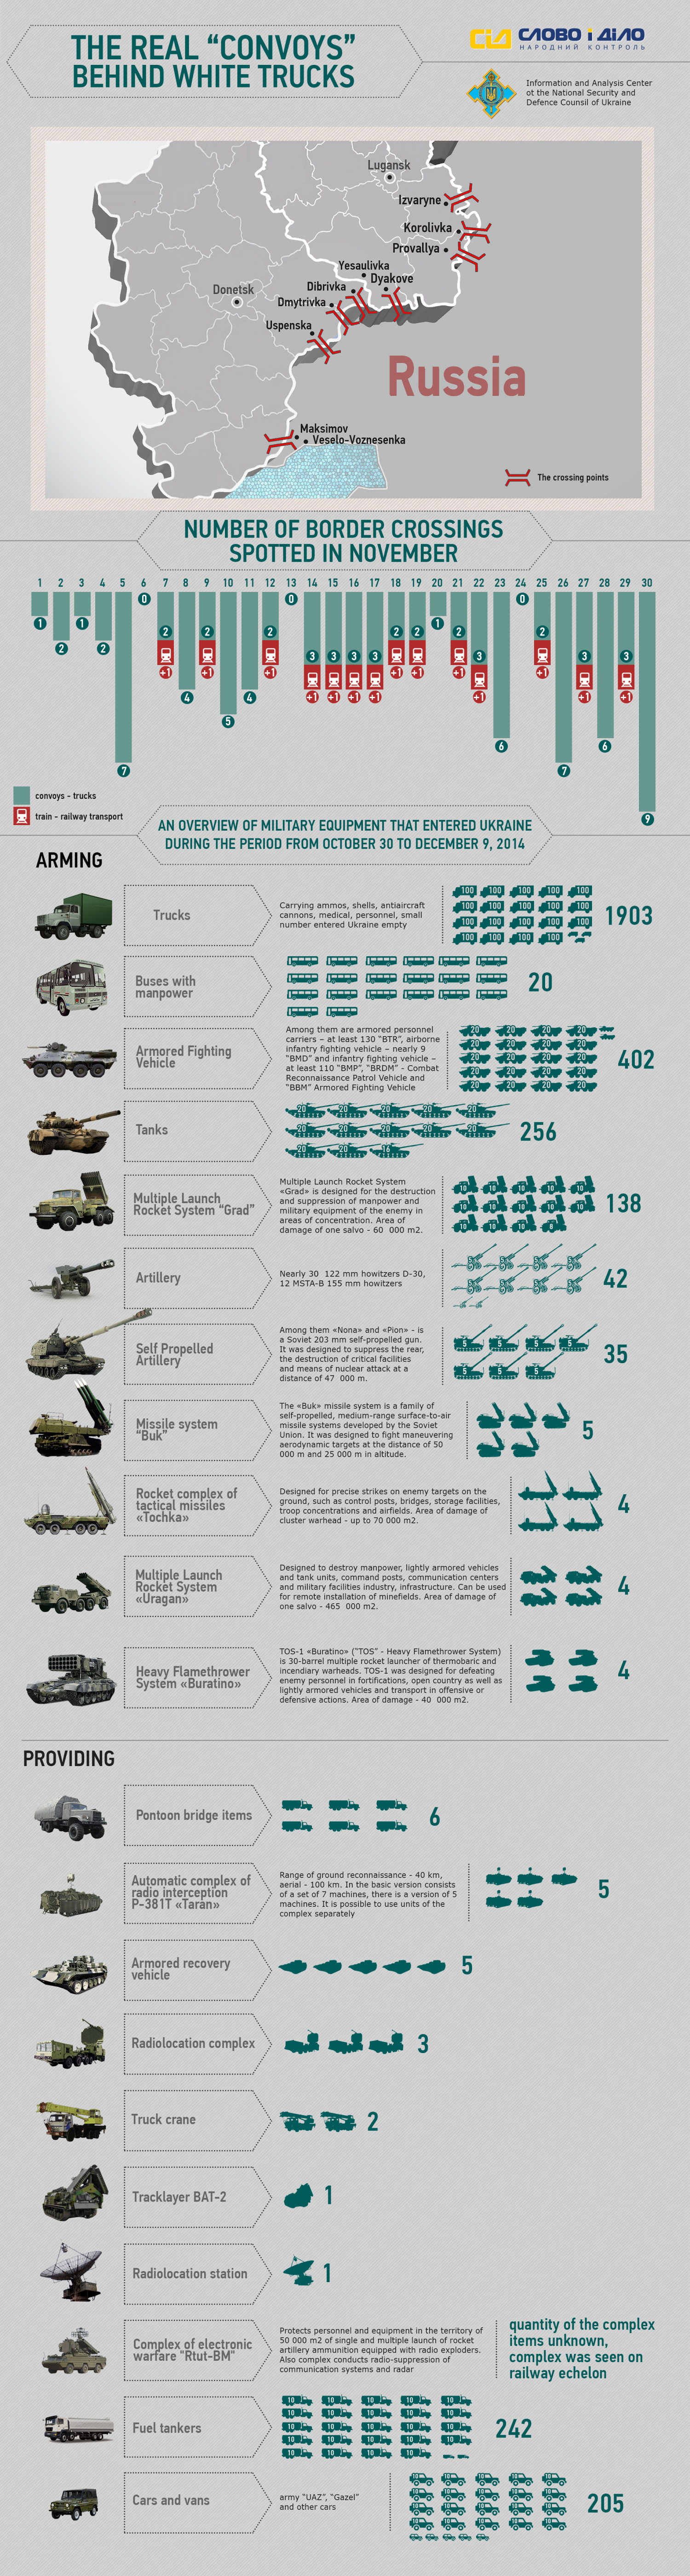 """The real """"convoy"""" behind white trucks Infographic"""